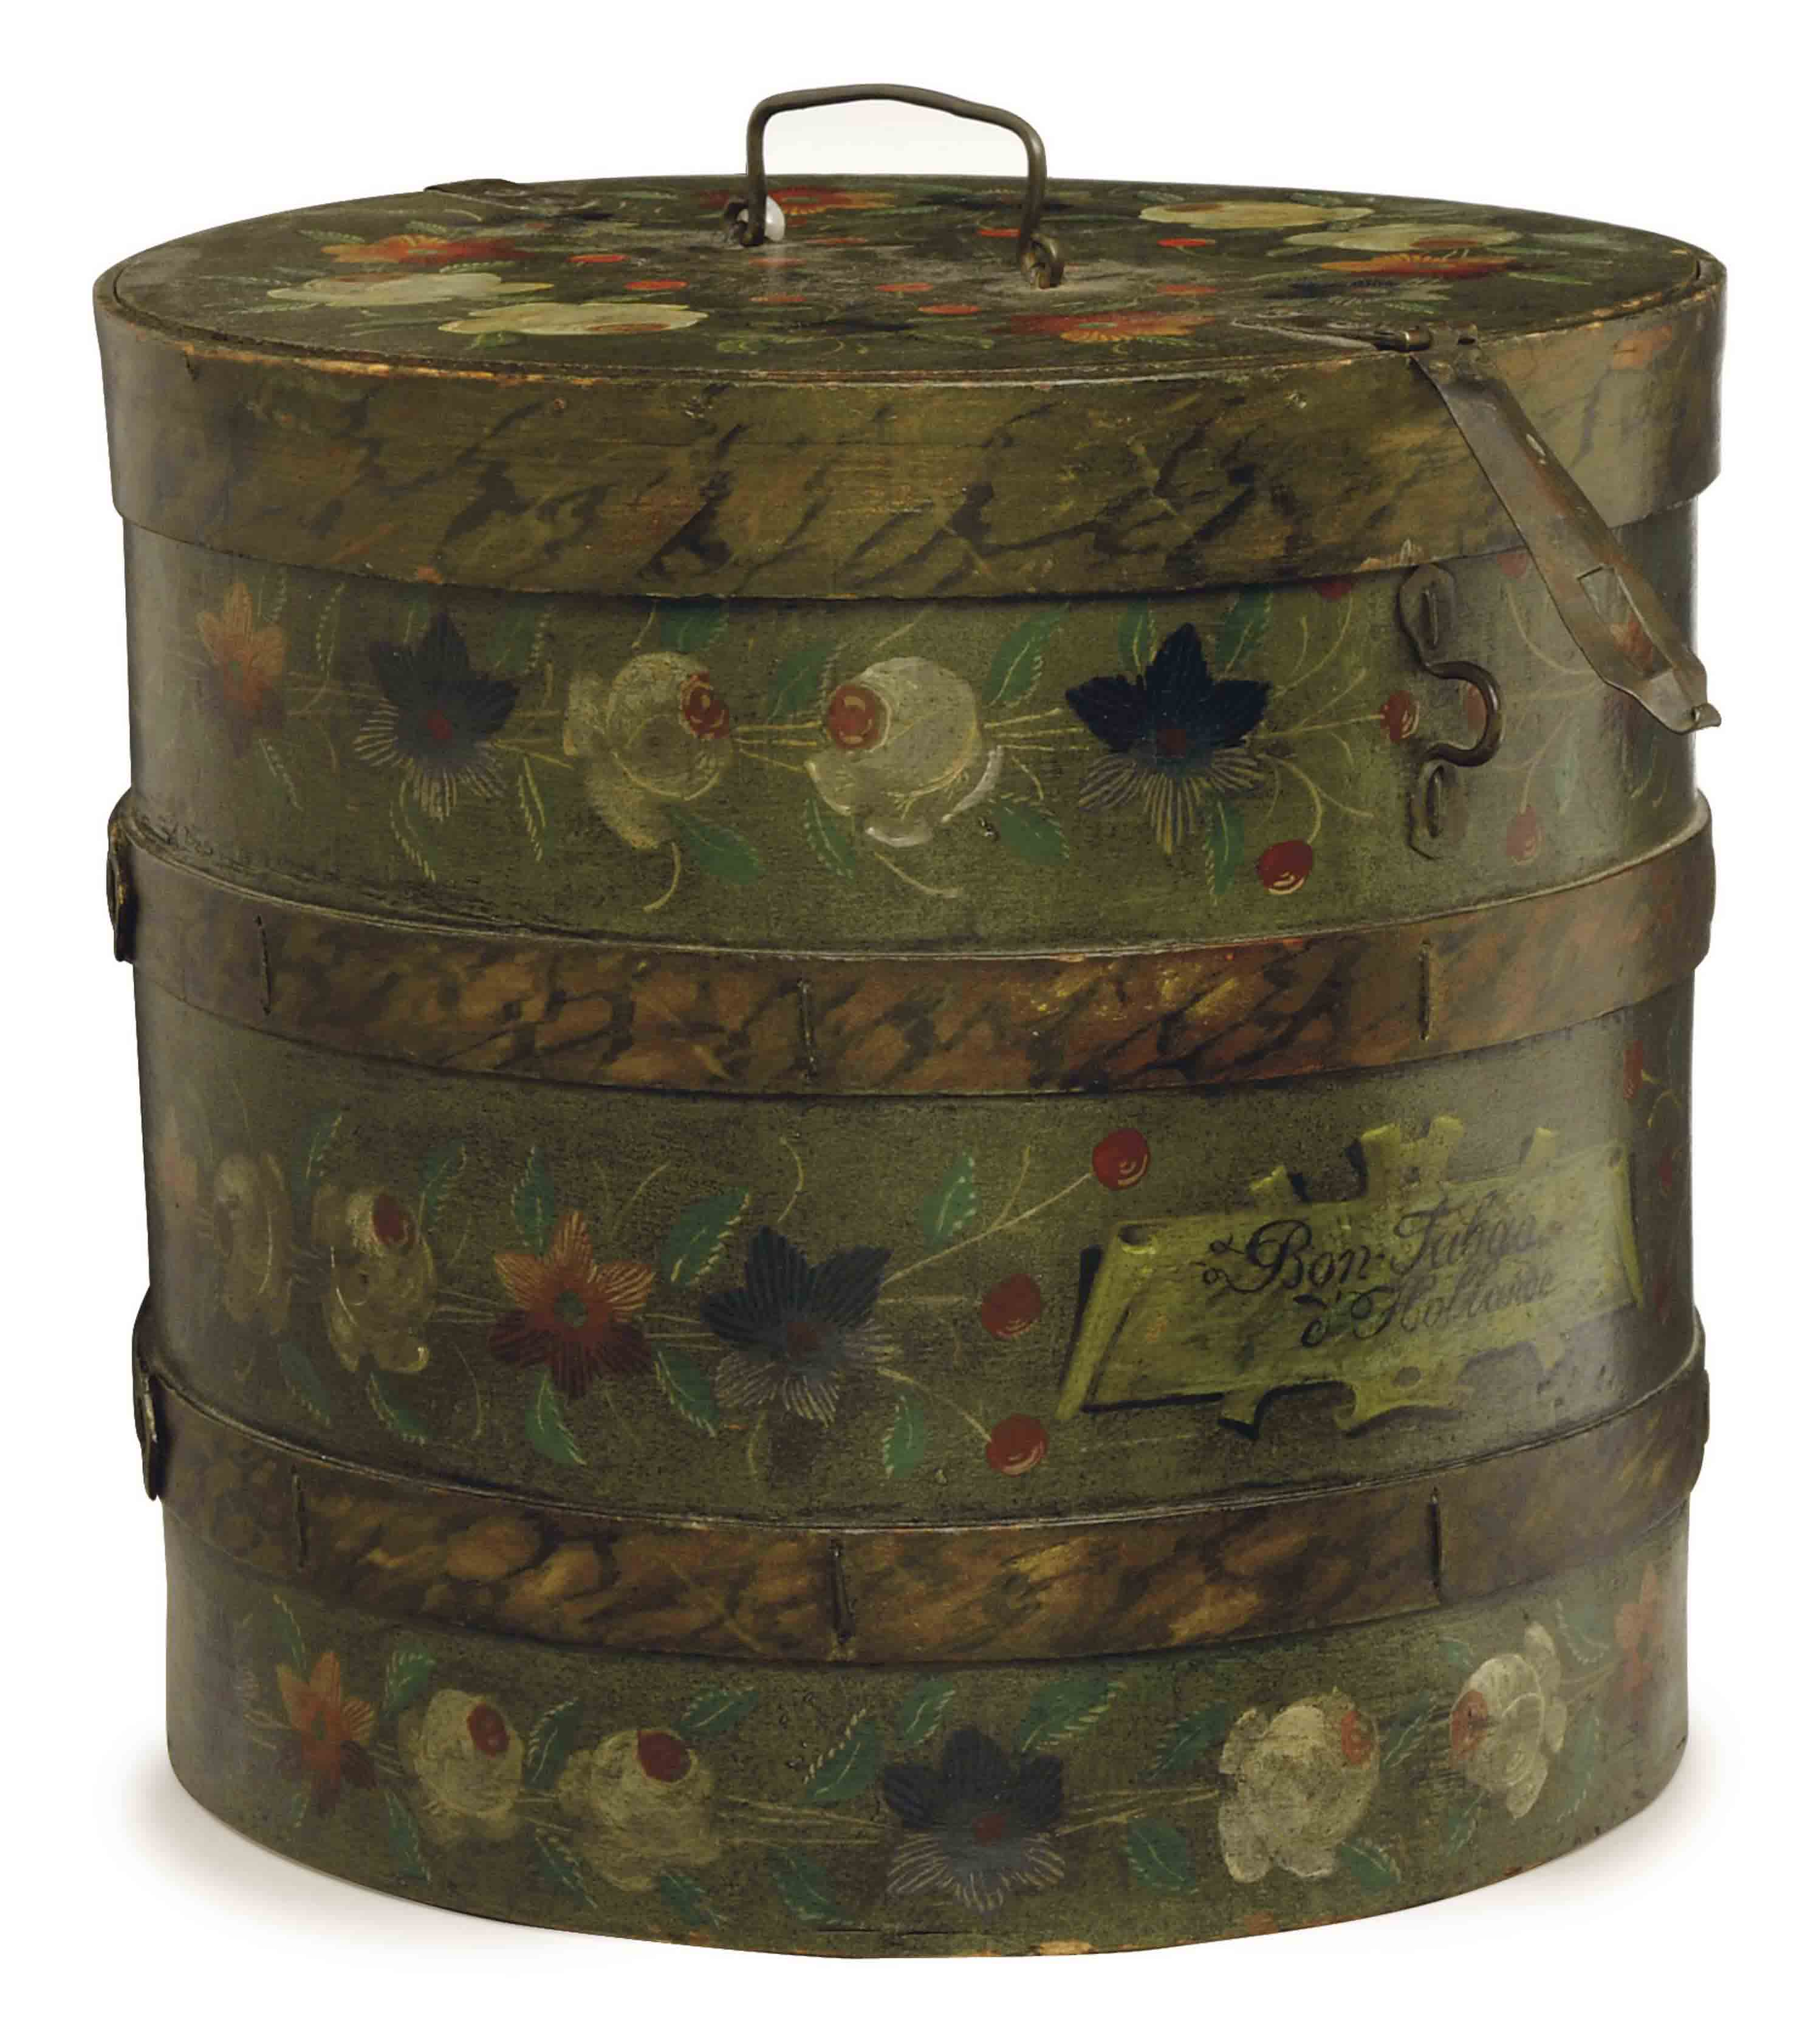 A CONTINENTAL POLYCHROME DECORATED CIRCULAR COOLING BOX,